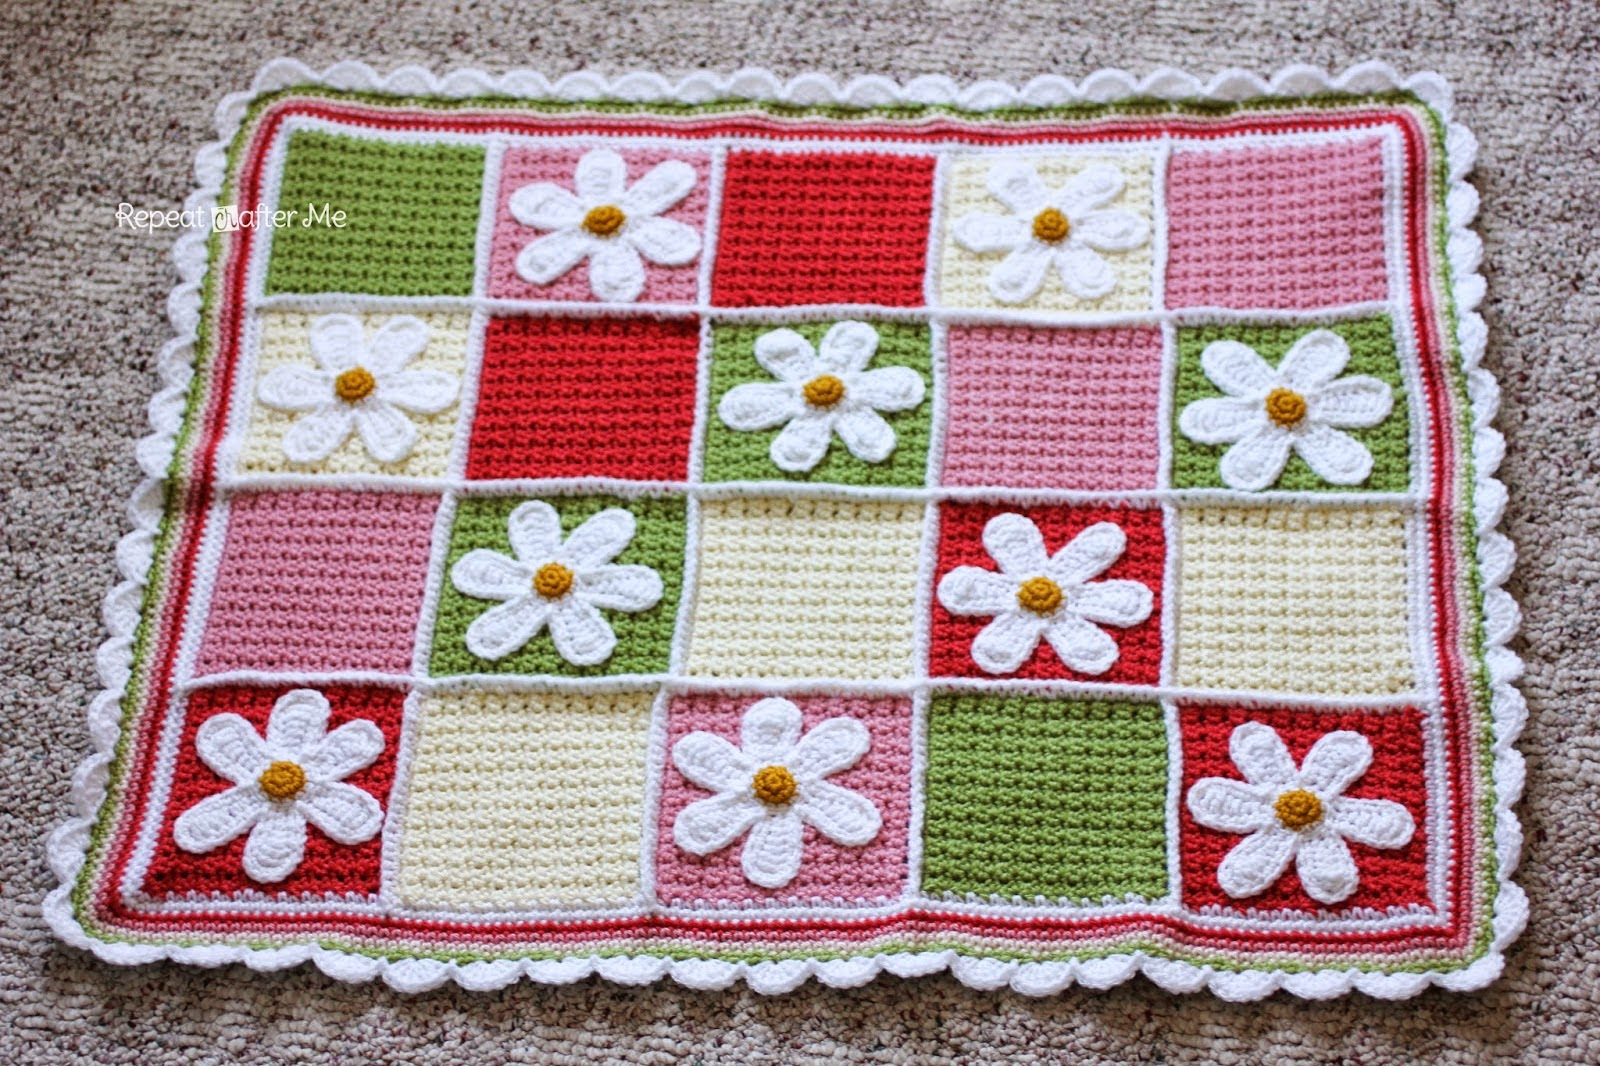 http://www.repeatcrafterme.com/2014/04/crochet-daisy-afghan.html